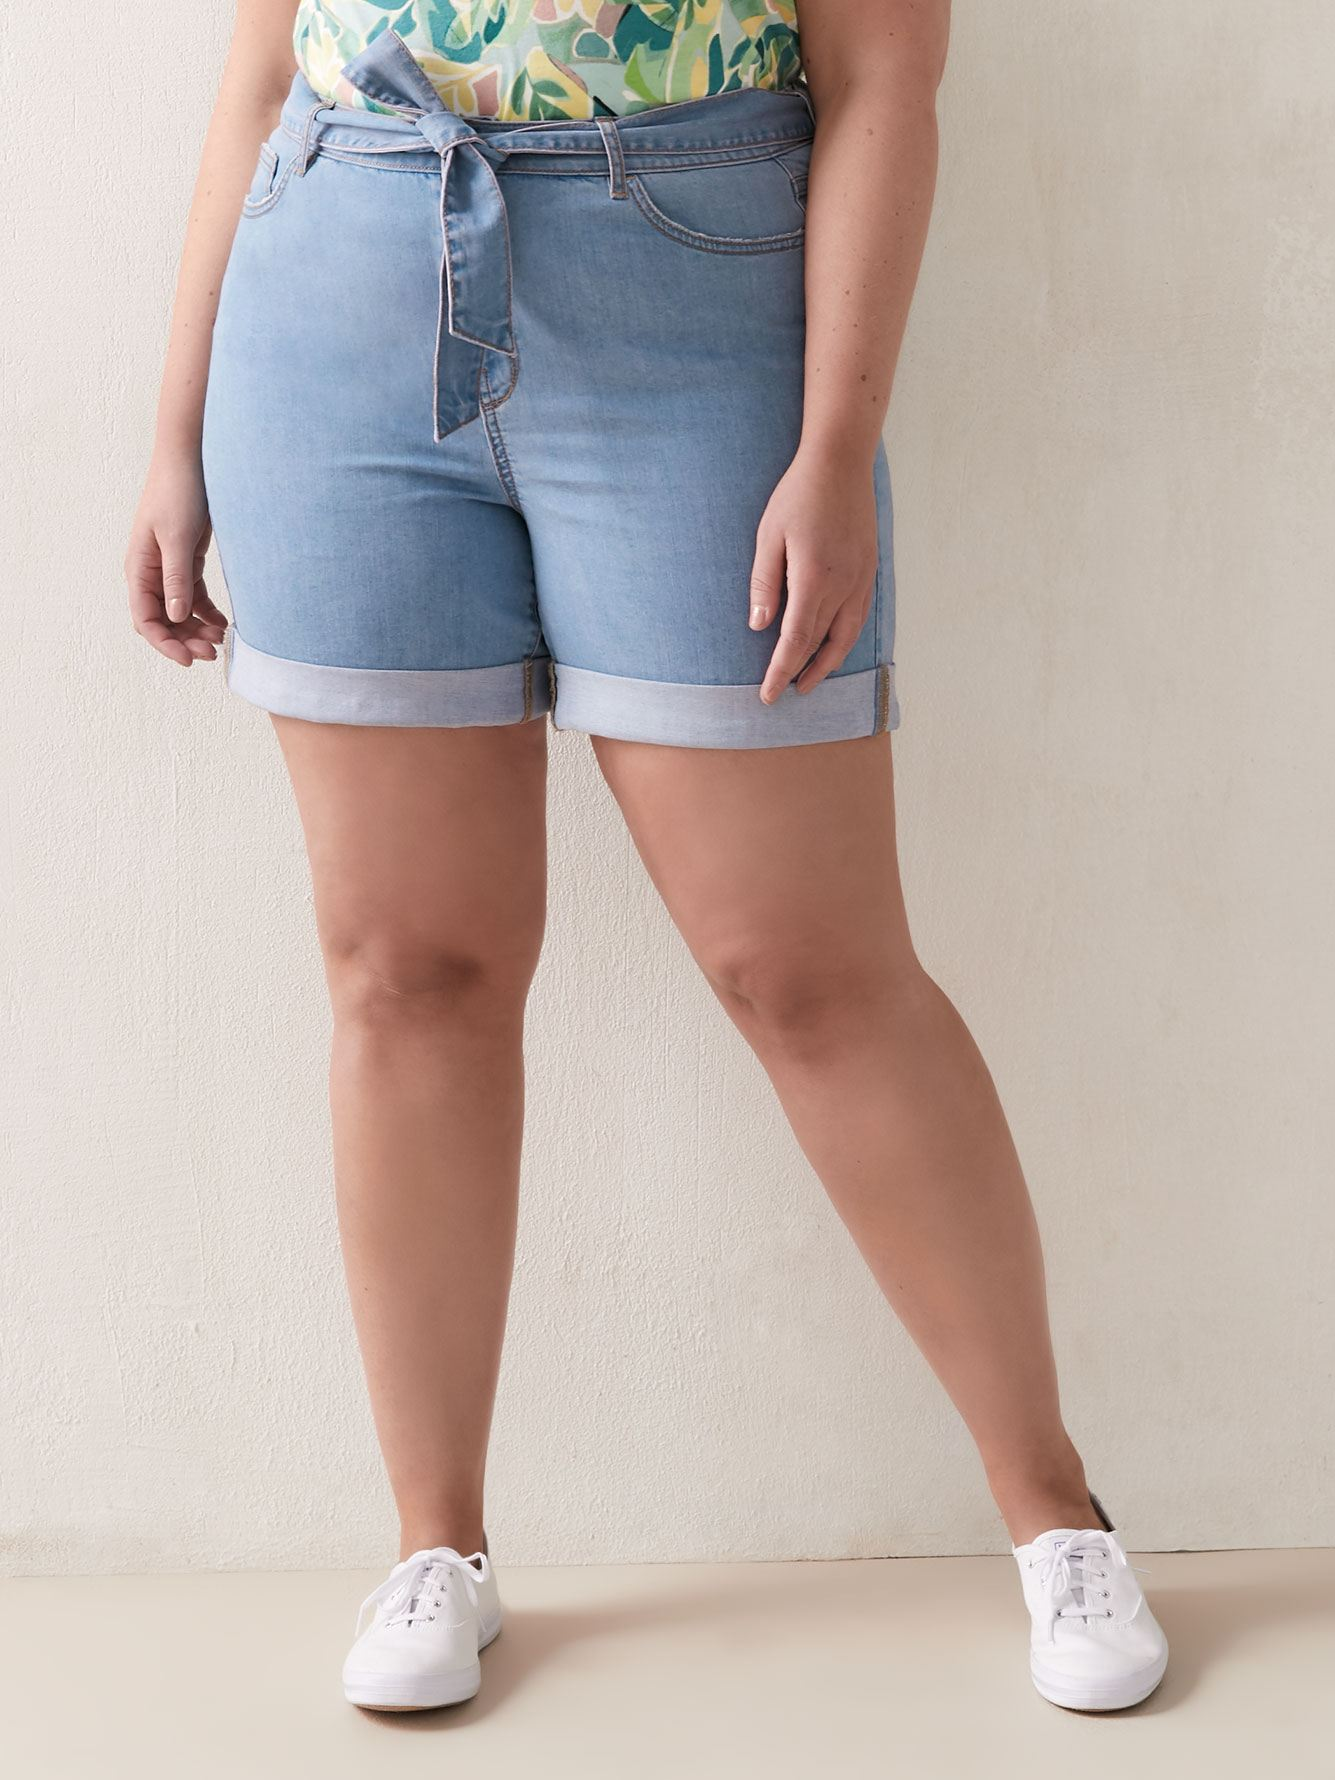 Belted Light Wash Denim Short - Addition Elle